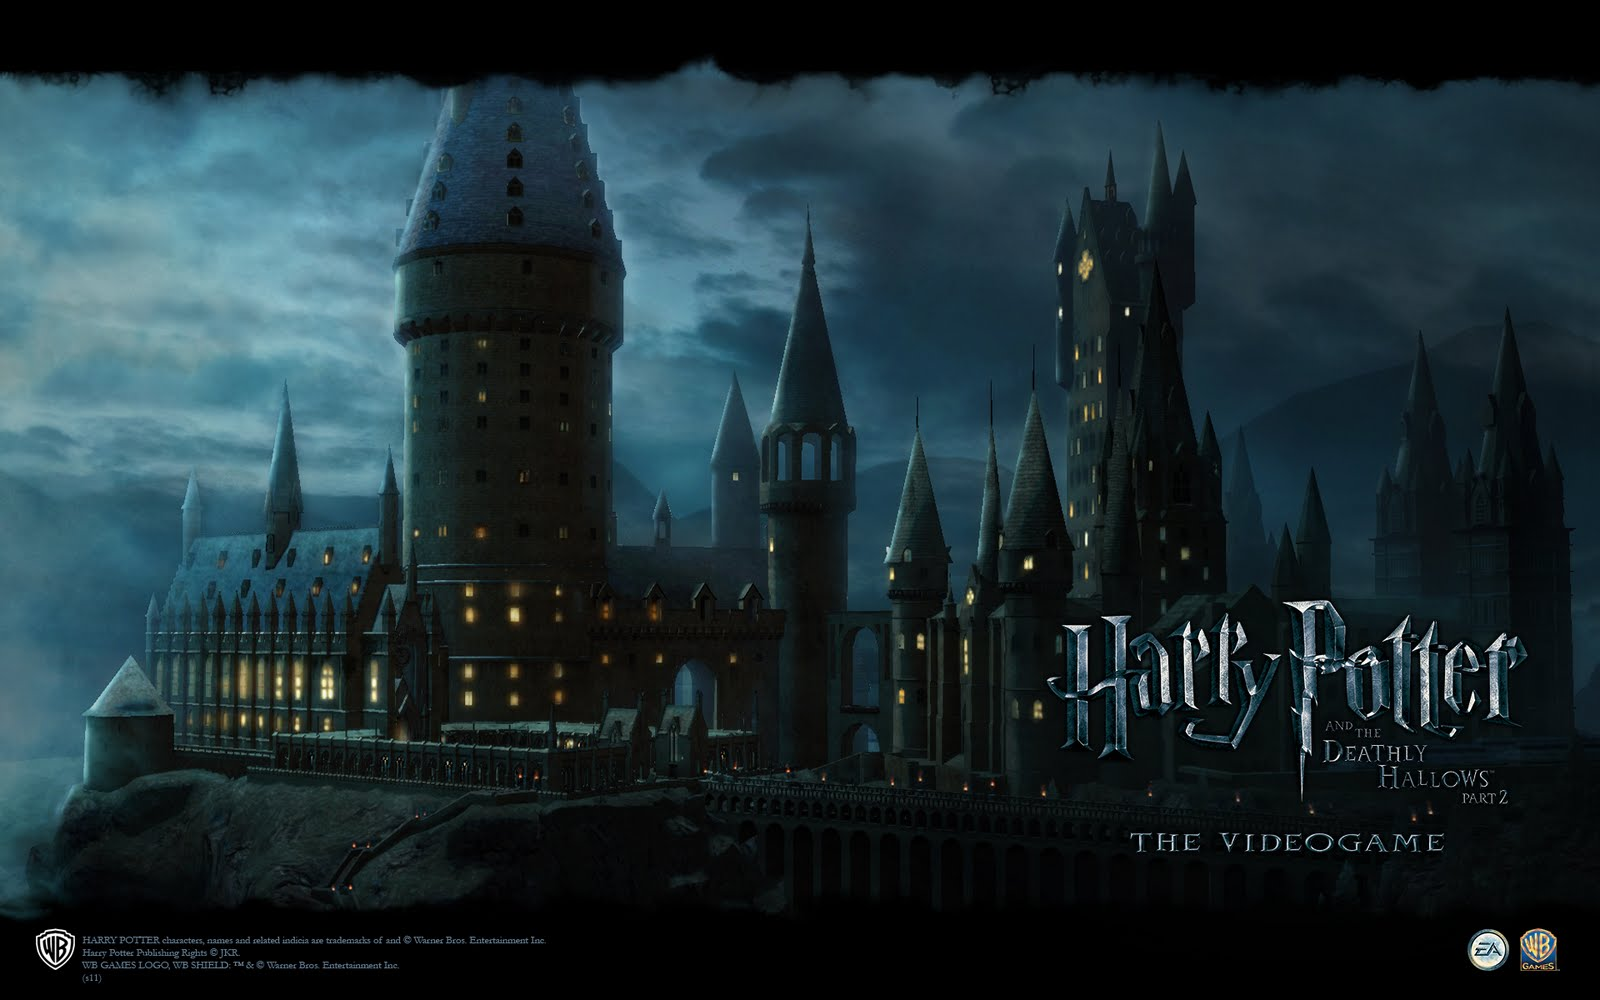 Amazing Wallpaper Harry Potter Mac - harry-potter-and-the-deathly-hallows-part-2-game-wallpaper-hogwarts-castle  Graphic_169224.jpg